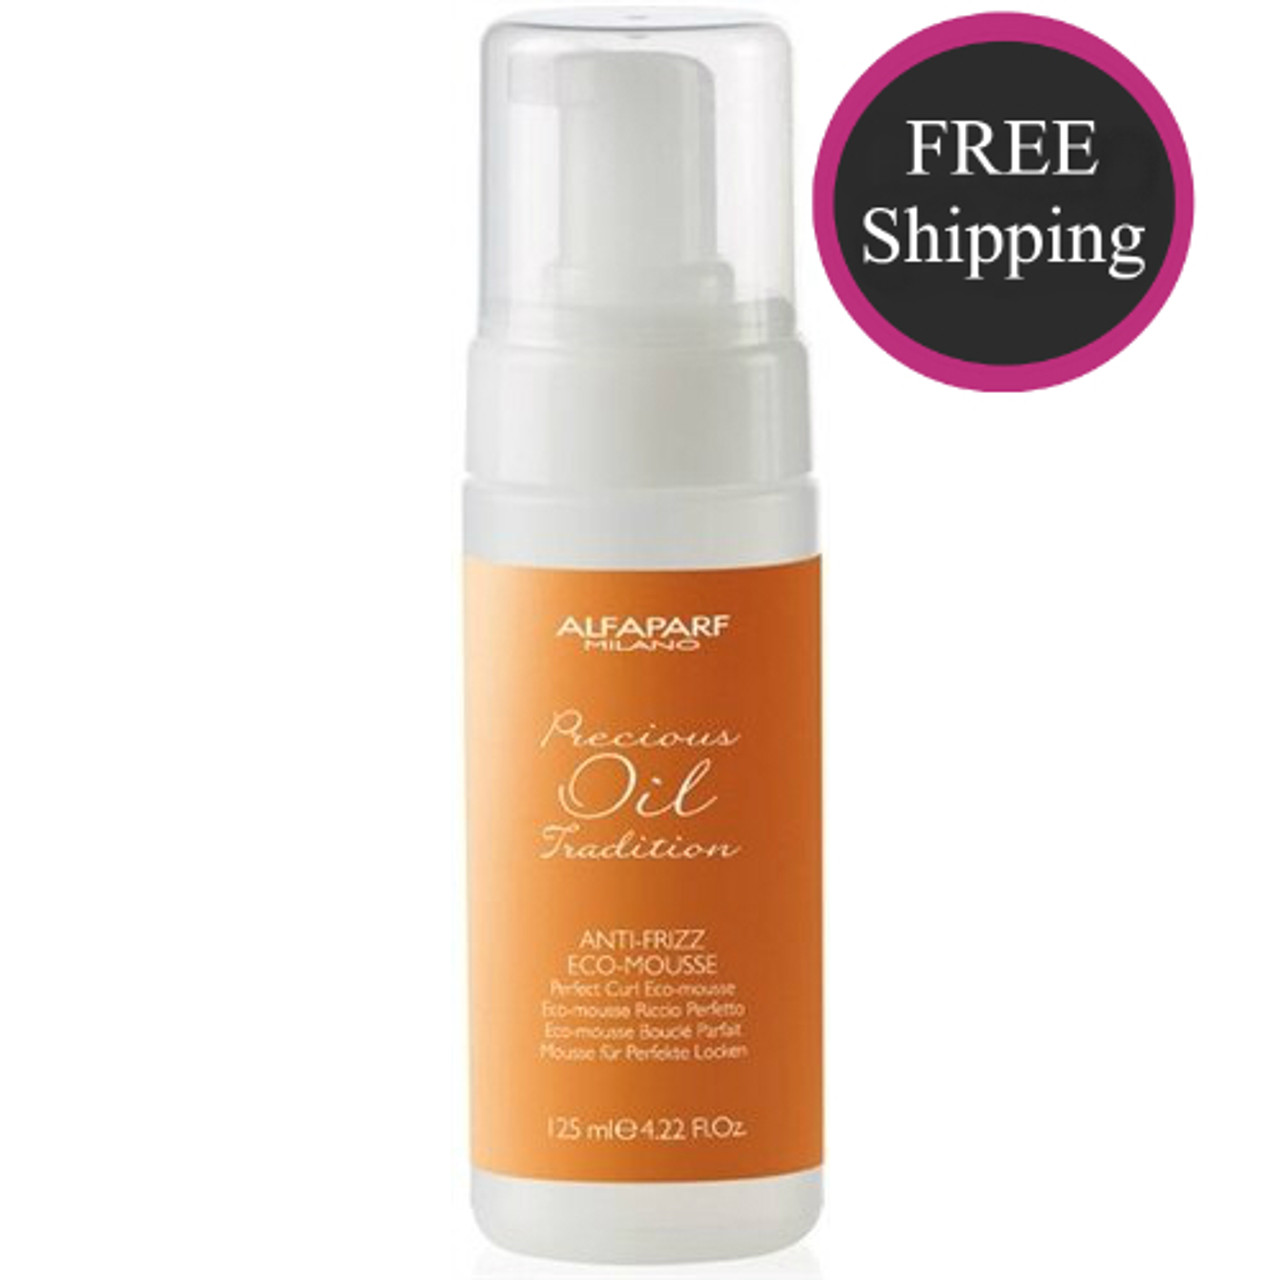 Alfaparf Anti-Frizz Eco Mousse 4.2 oz